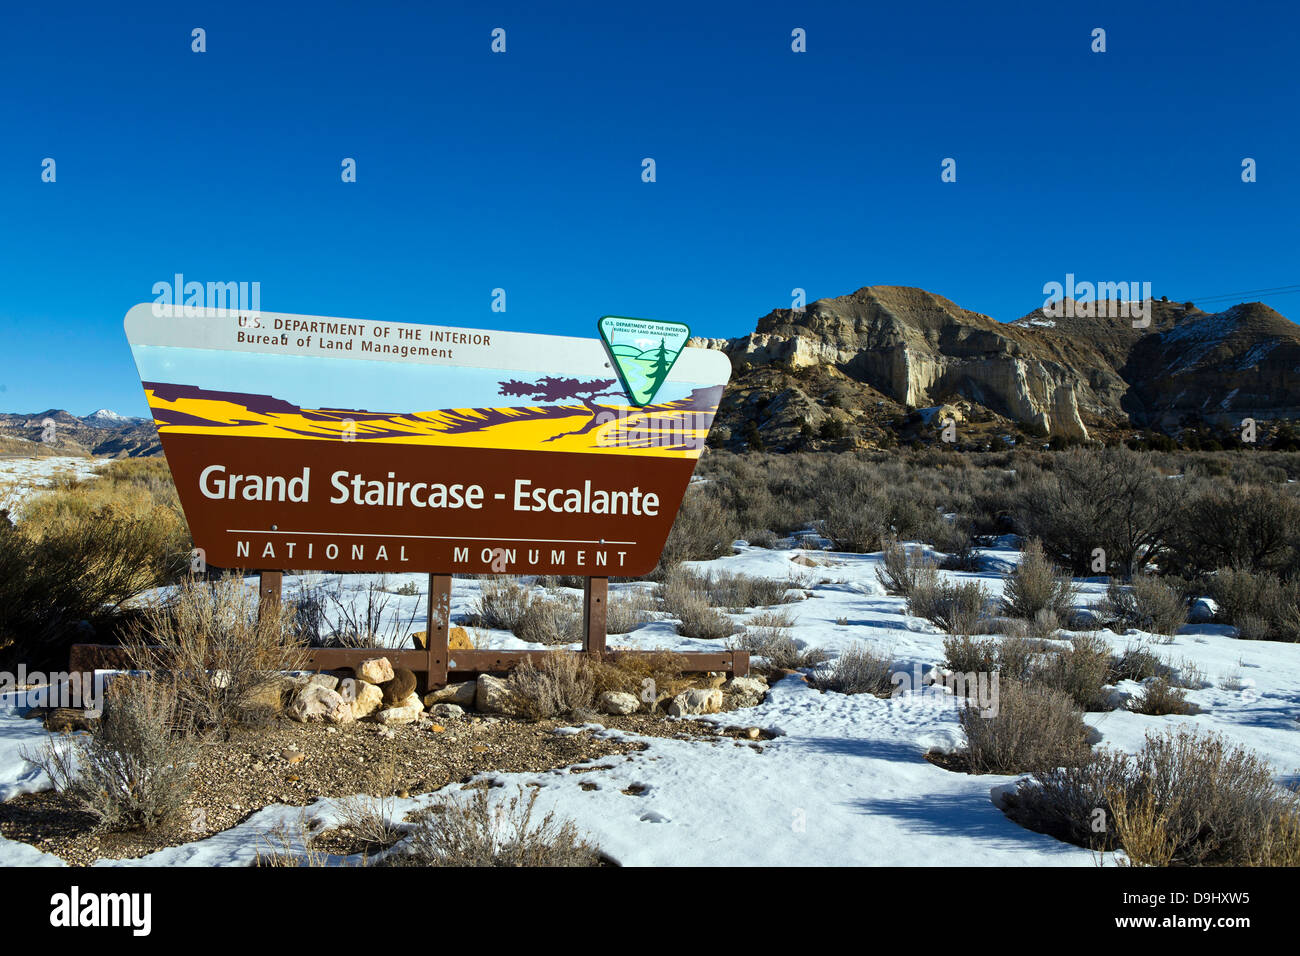 Grand Staircase-Escalante National Monument, Bureau of Land Management sign, Utah, United States of America - Stock Image